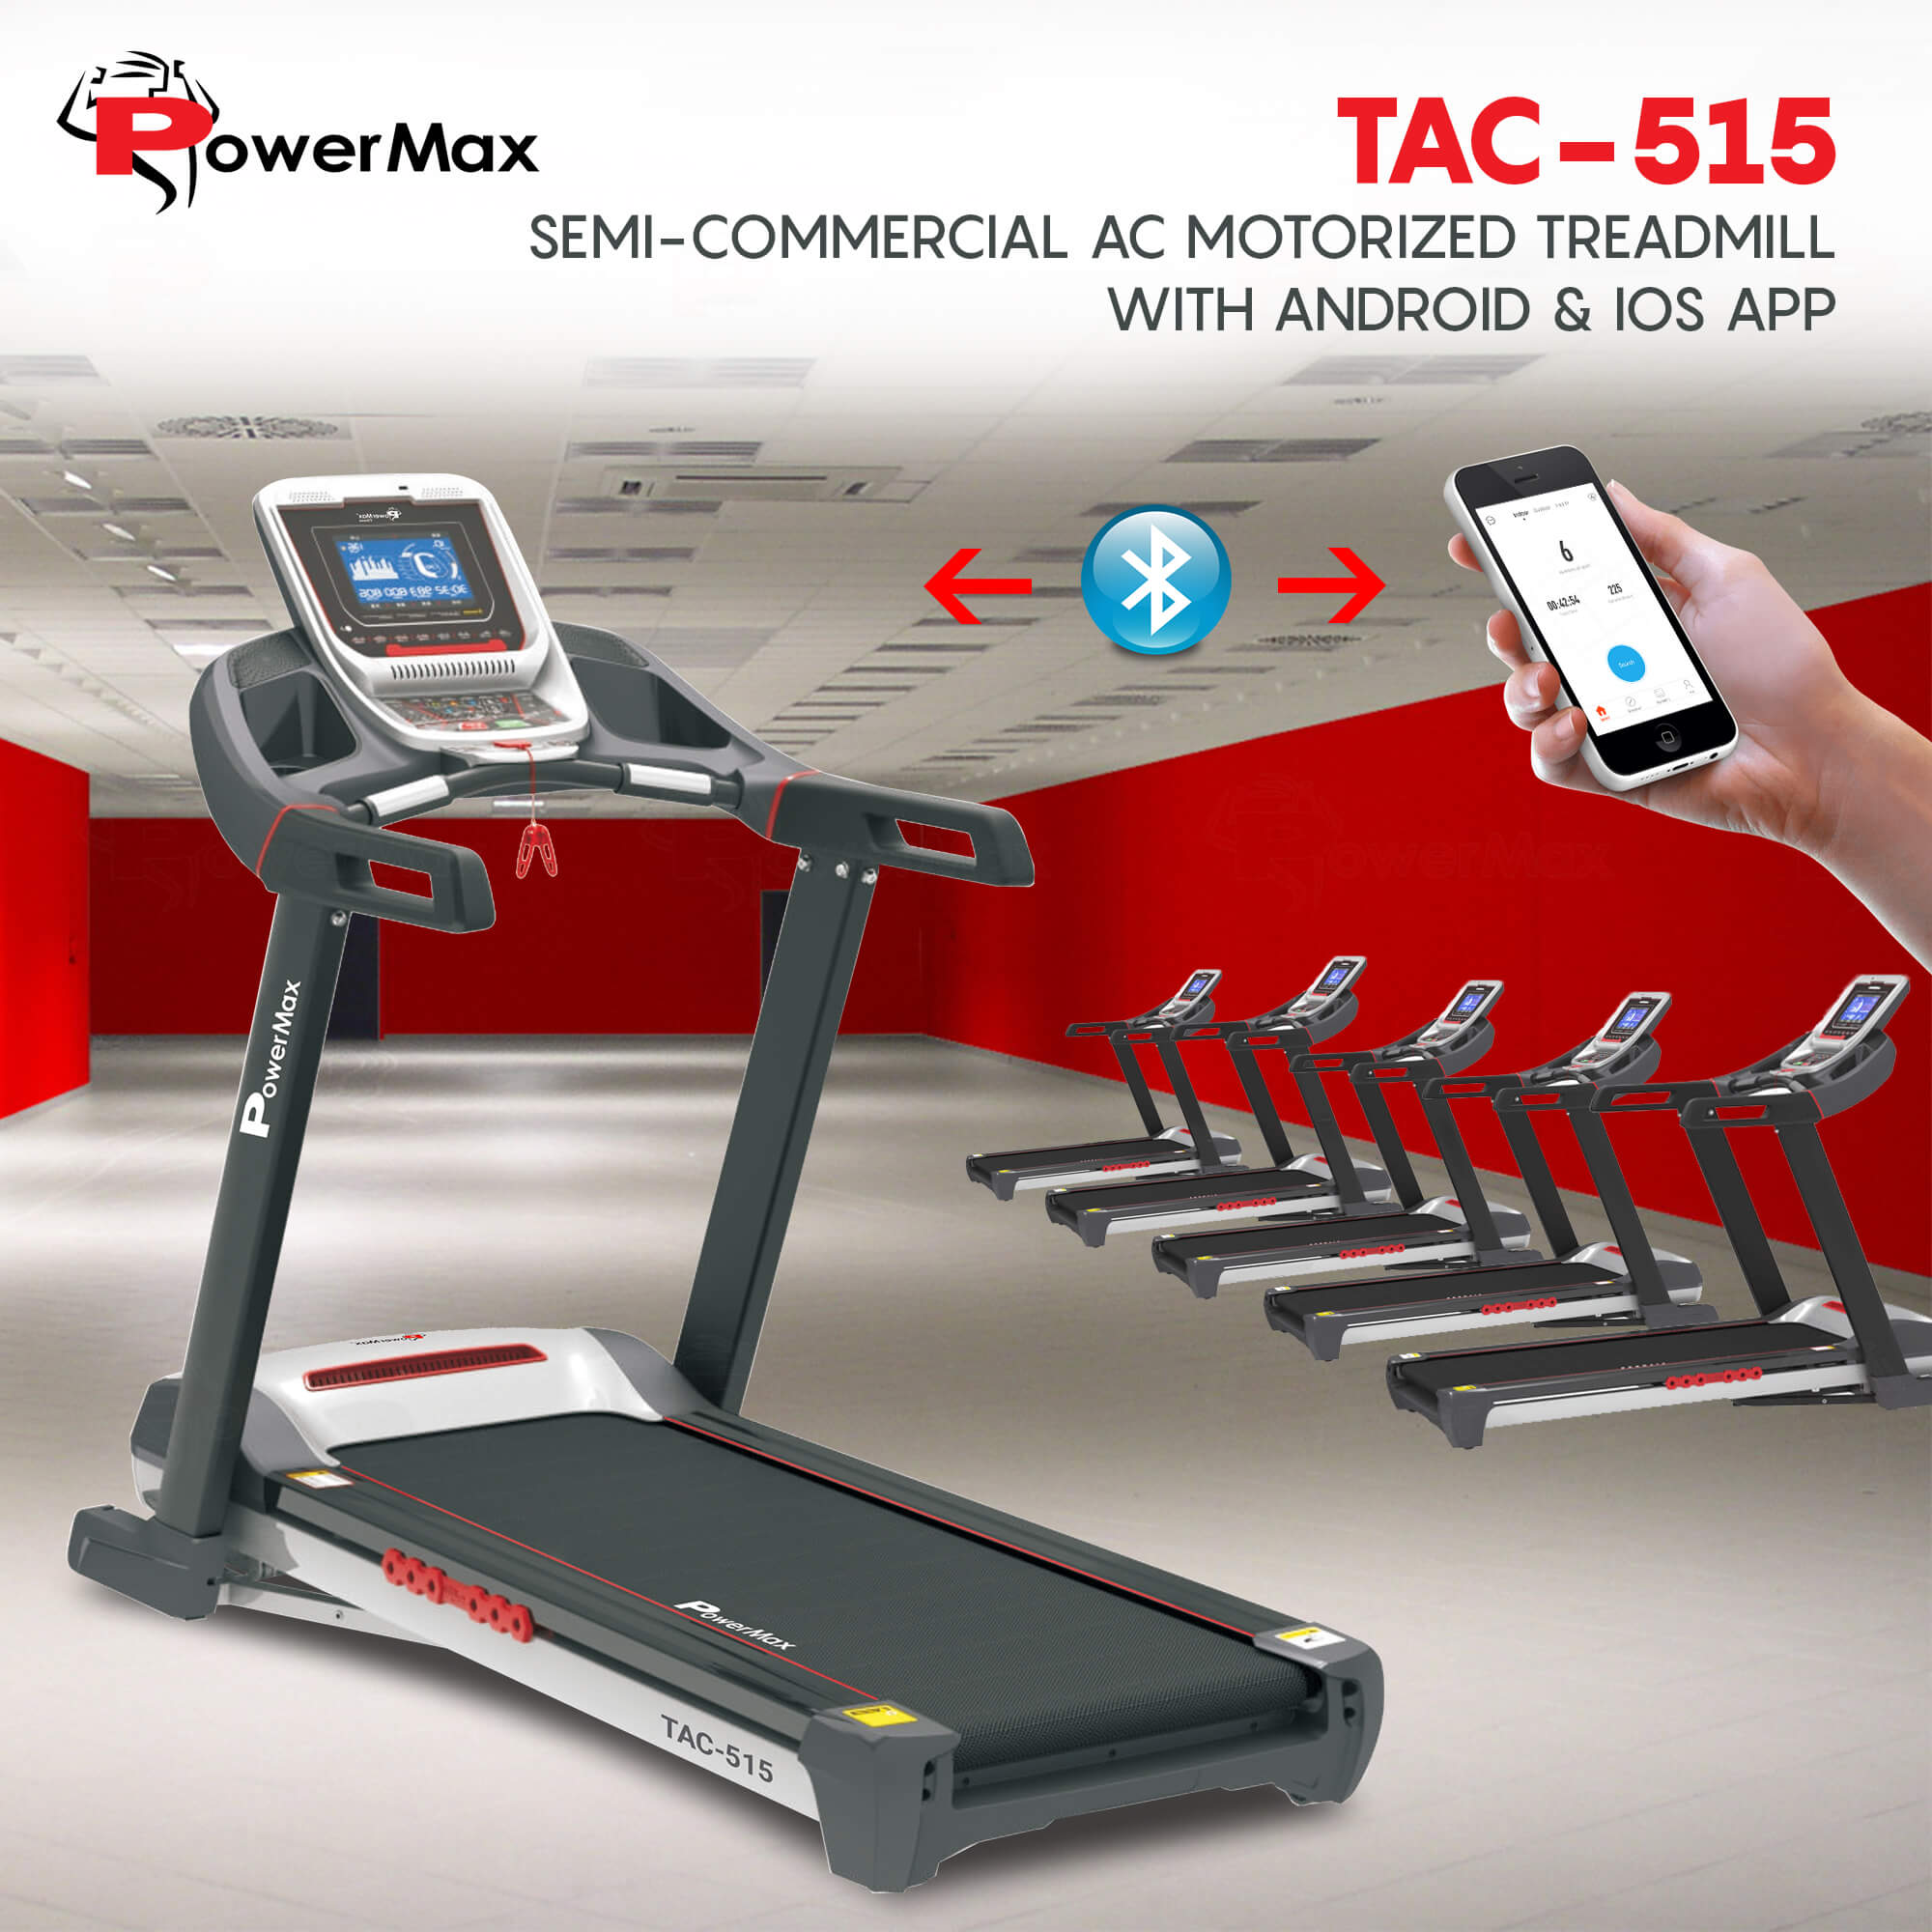 TAC-515 Commercial Motorized AC Treadmill with Android & iOS App